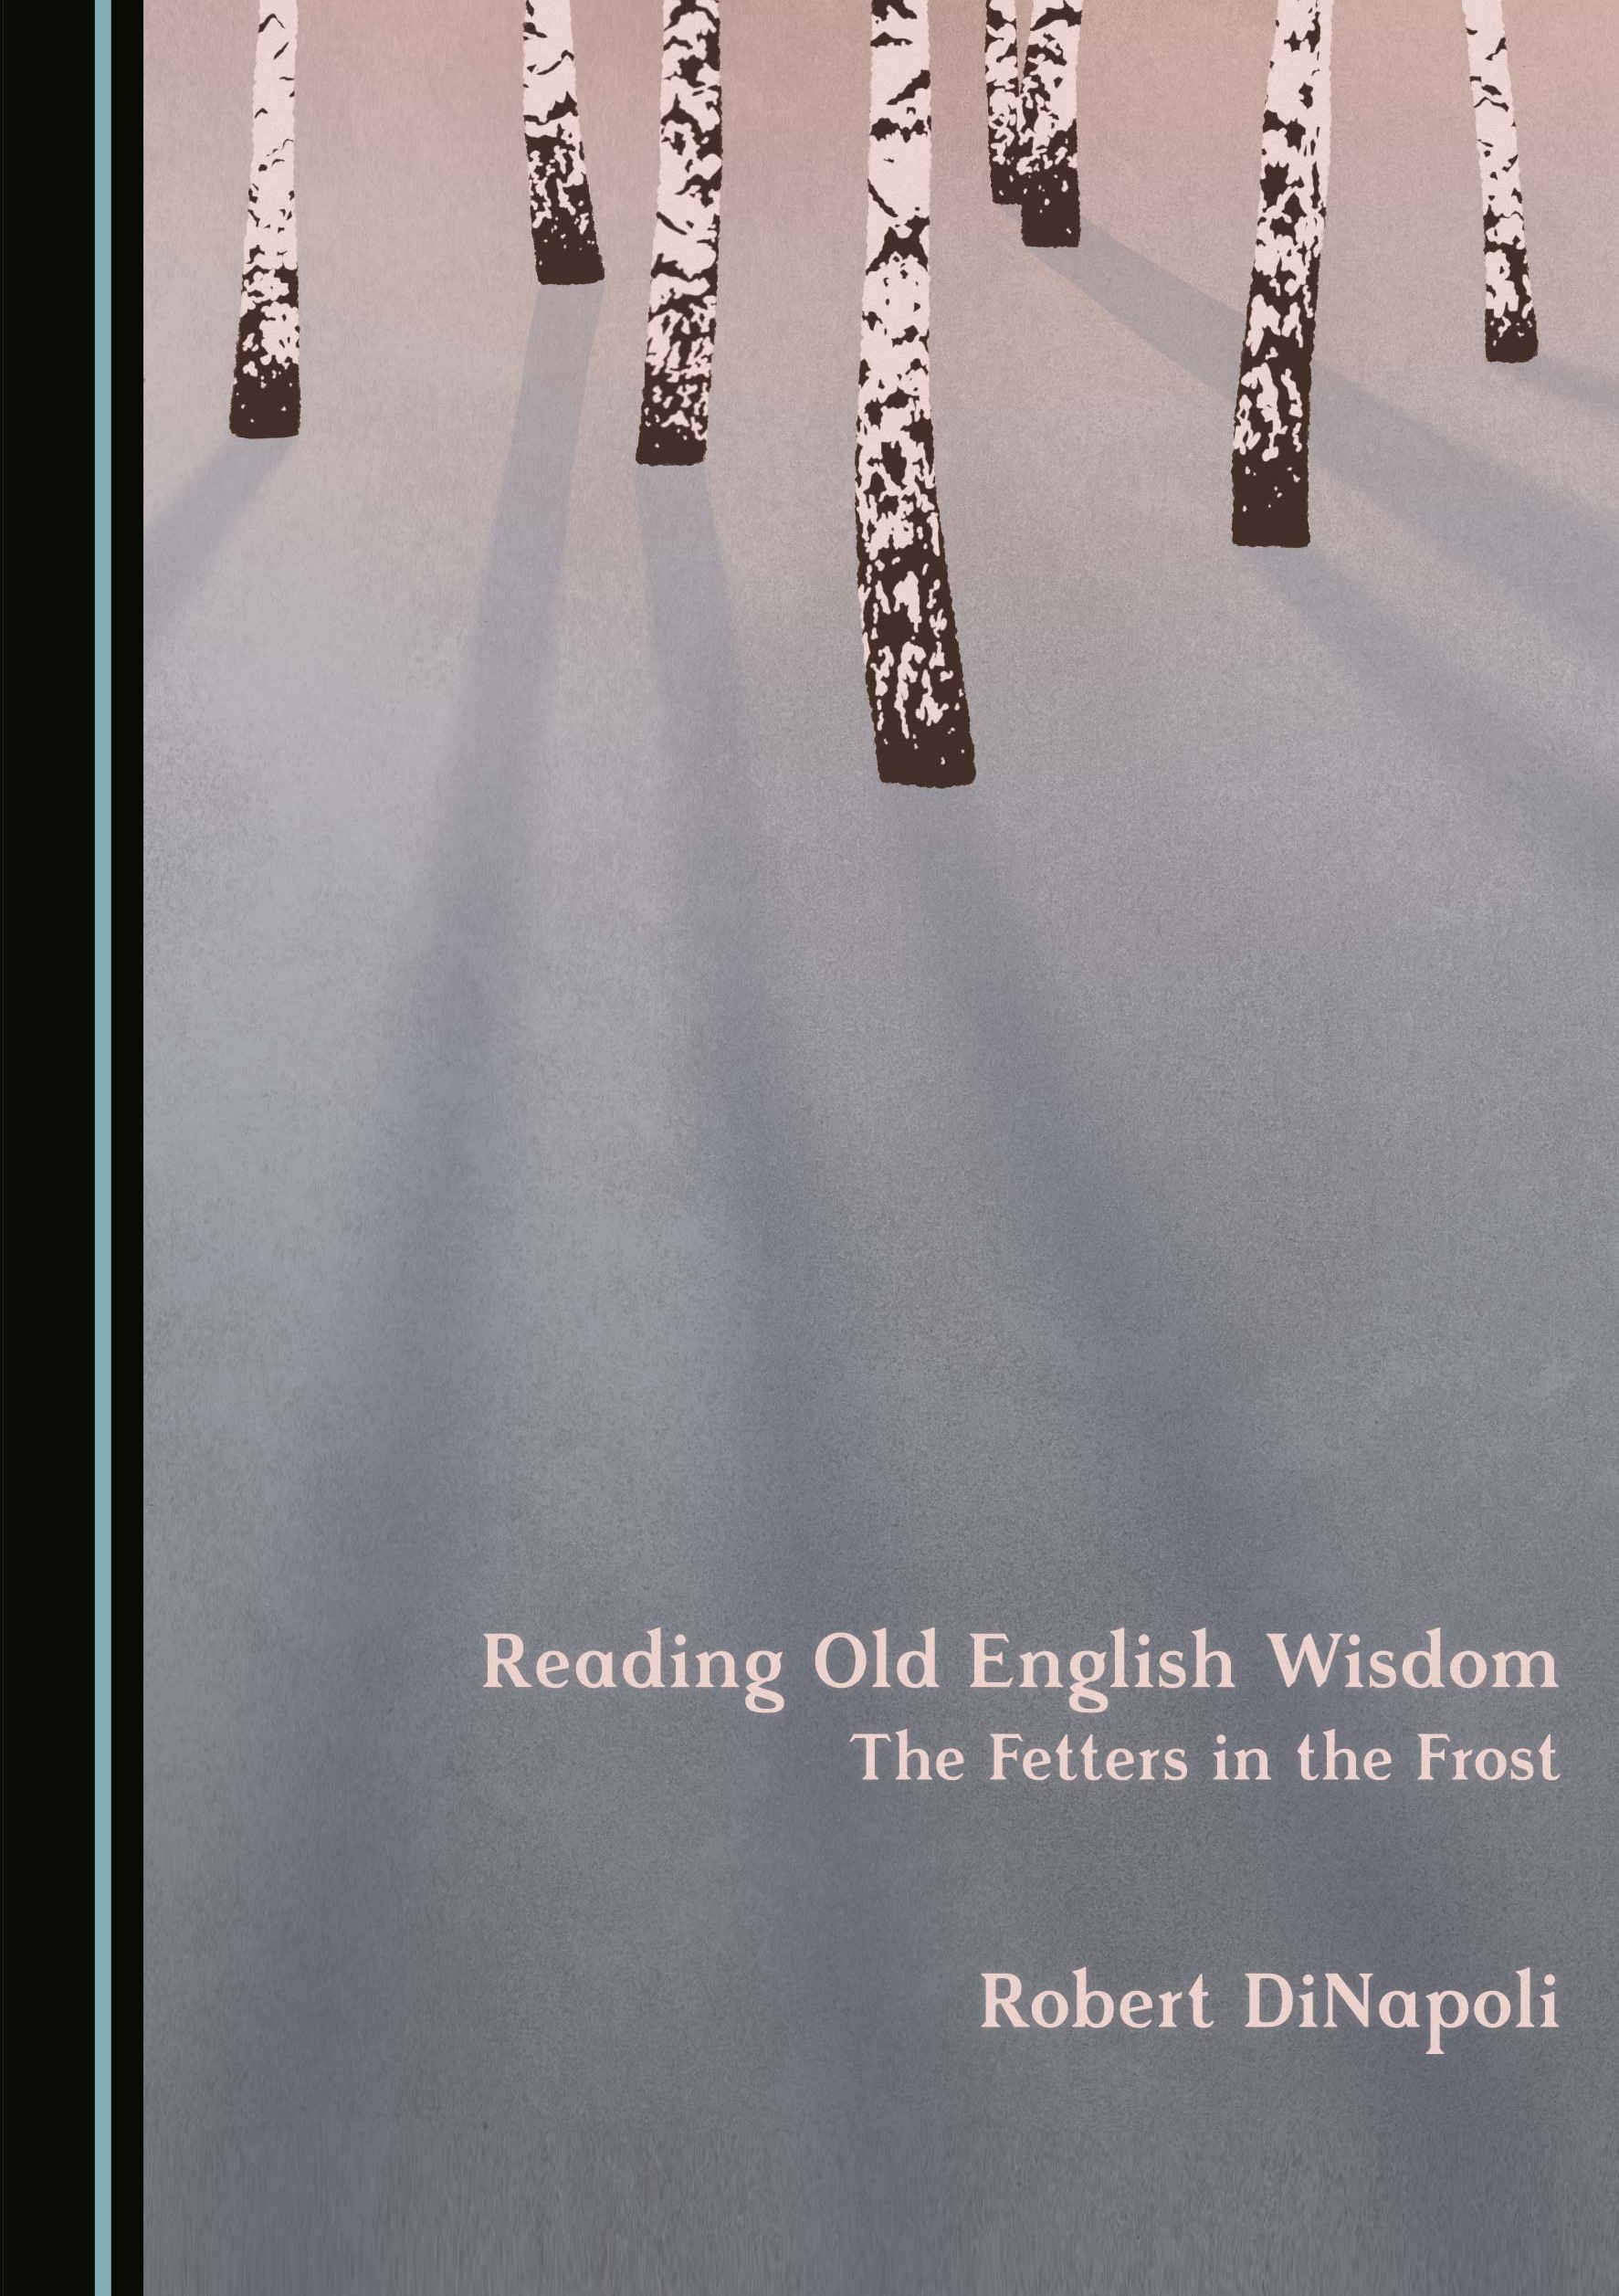 Reading Old English Wisdom: The Fetters in the Frost